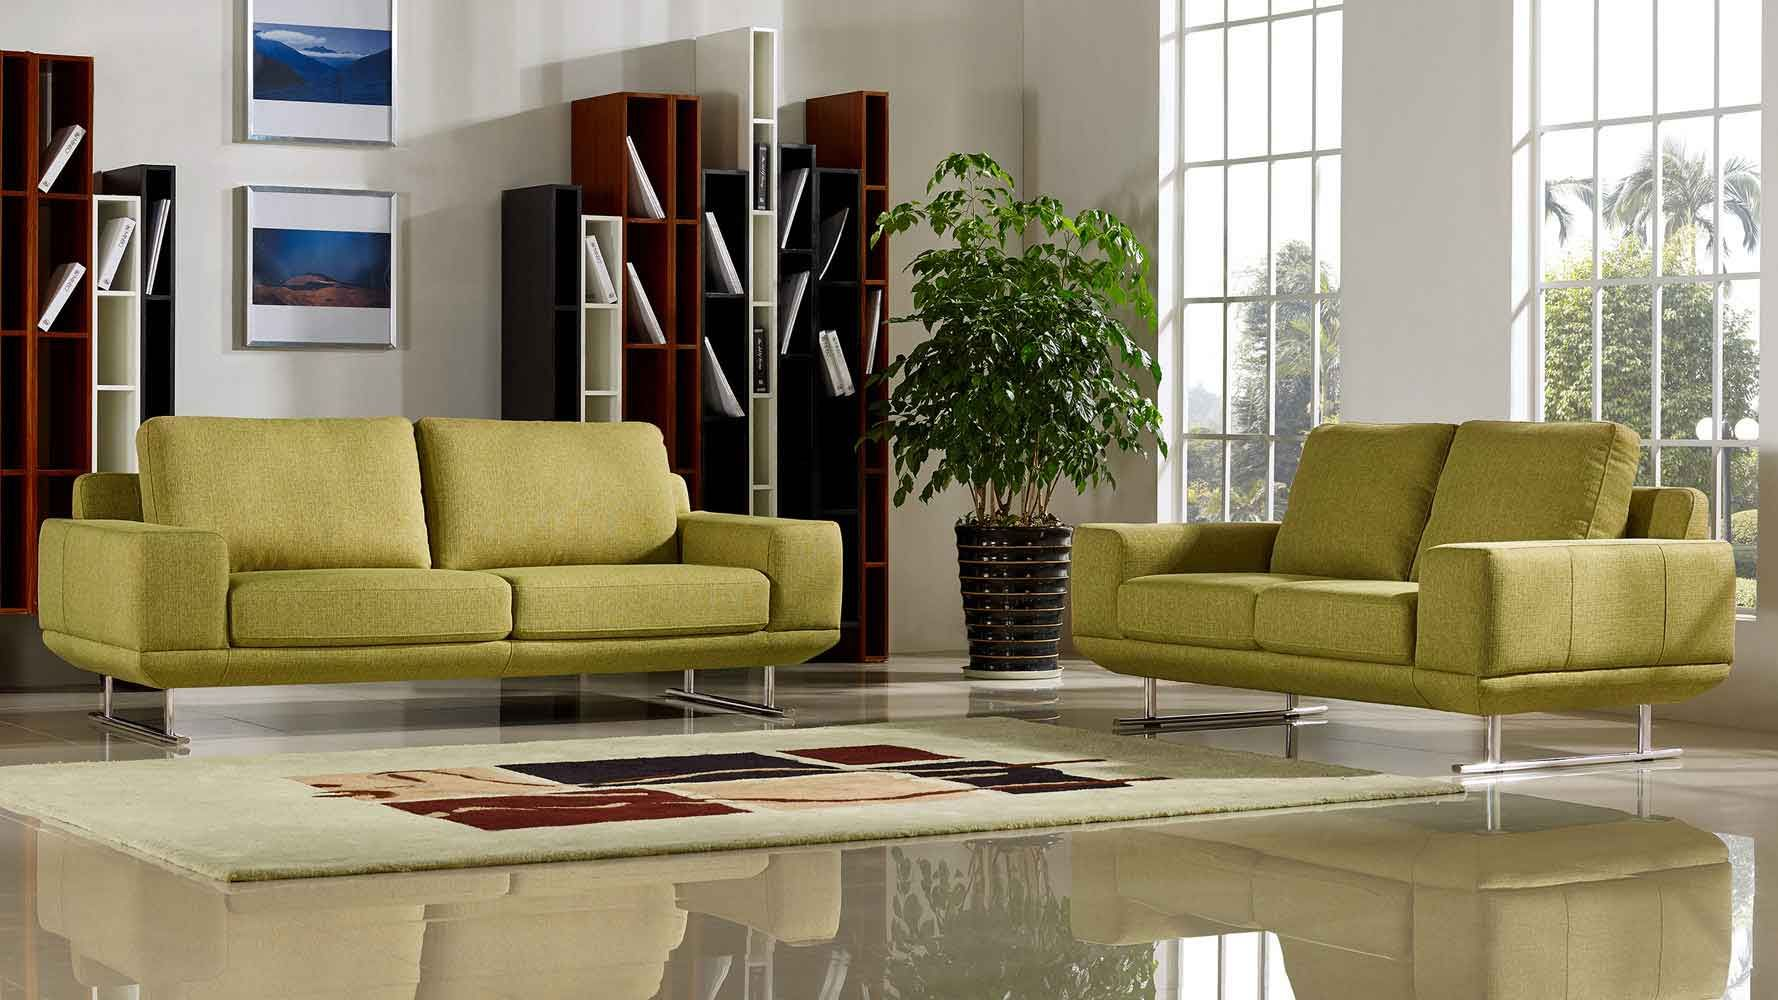 Shop Modern Chartreuse Fabric Della Sofa And Loveseat Set And Other Modern  And Contemporary Home And Office Furniture. Browse Our Selection Of Sofas  From ...